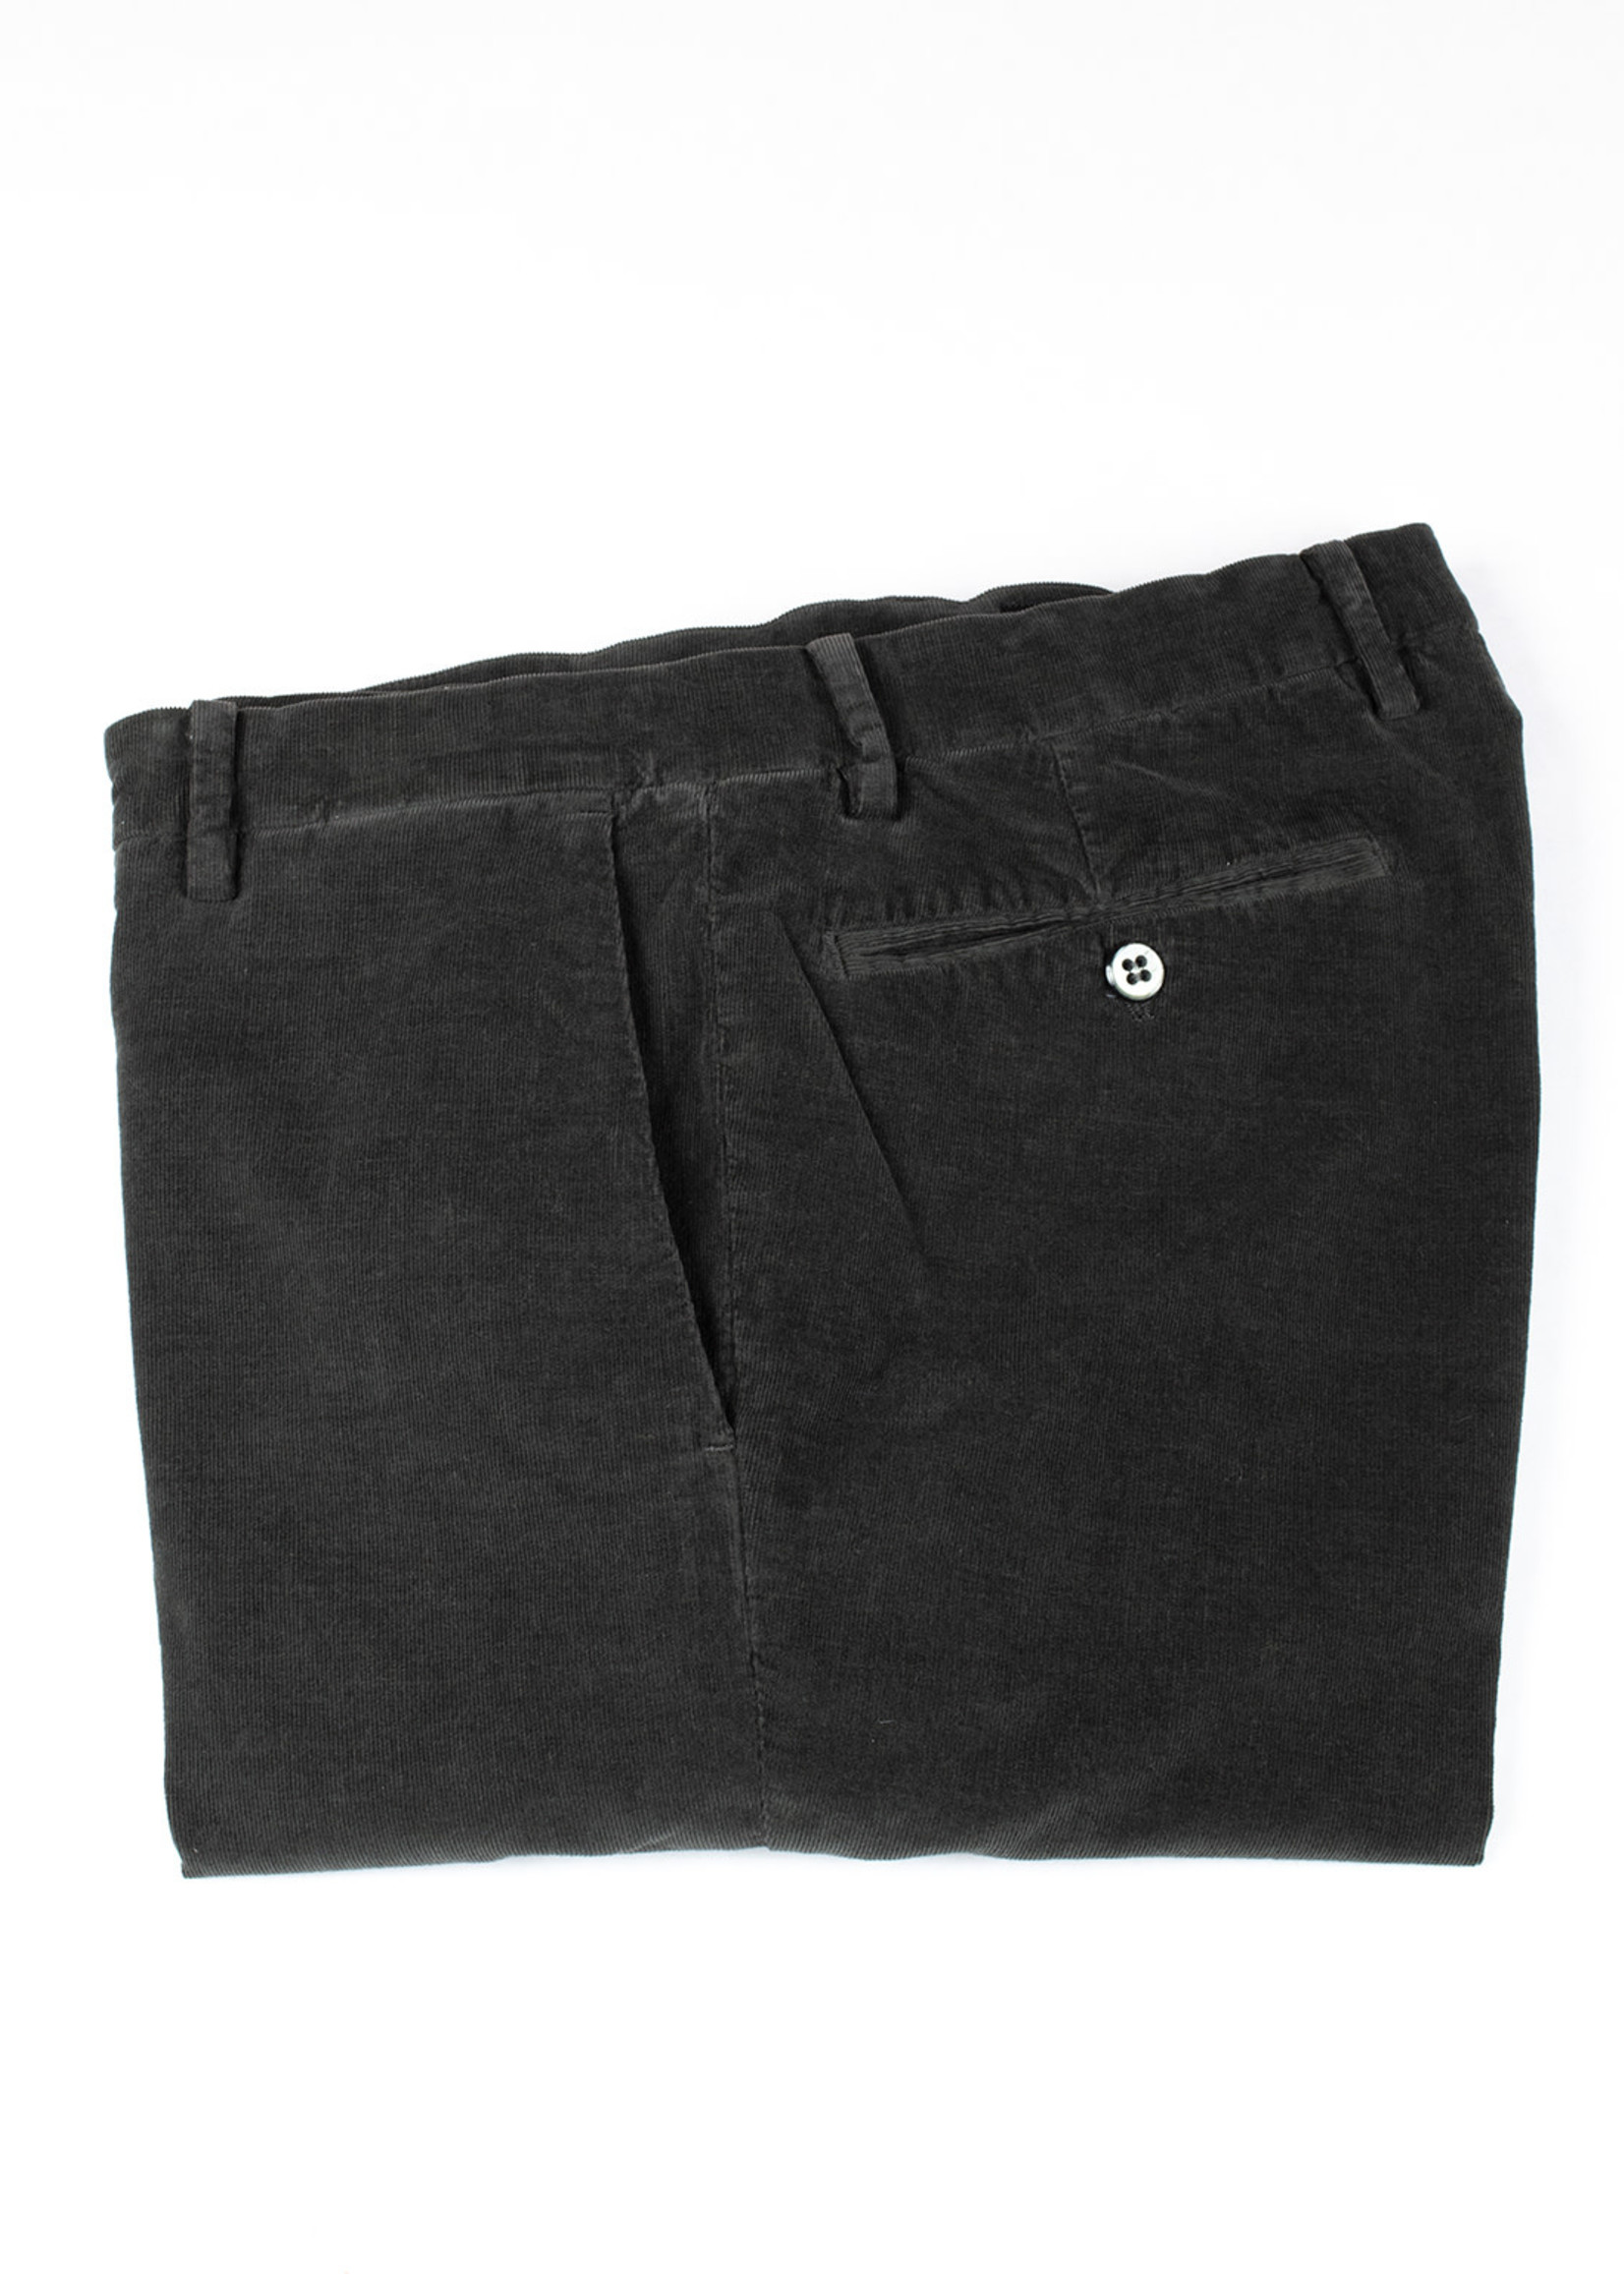 New York Charcoal Cotton Corduroy Trousers by Mason's